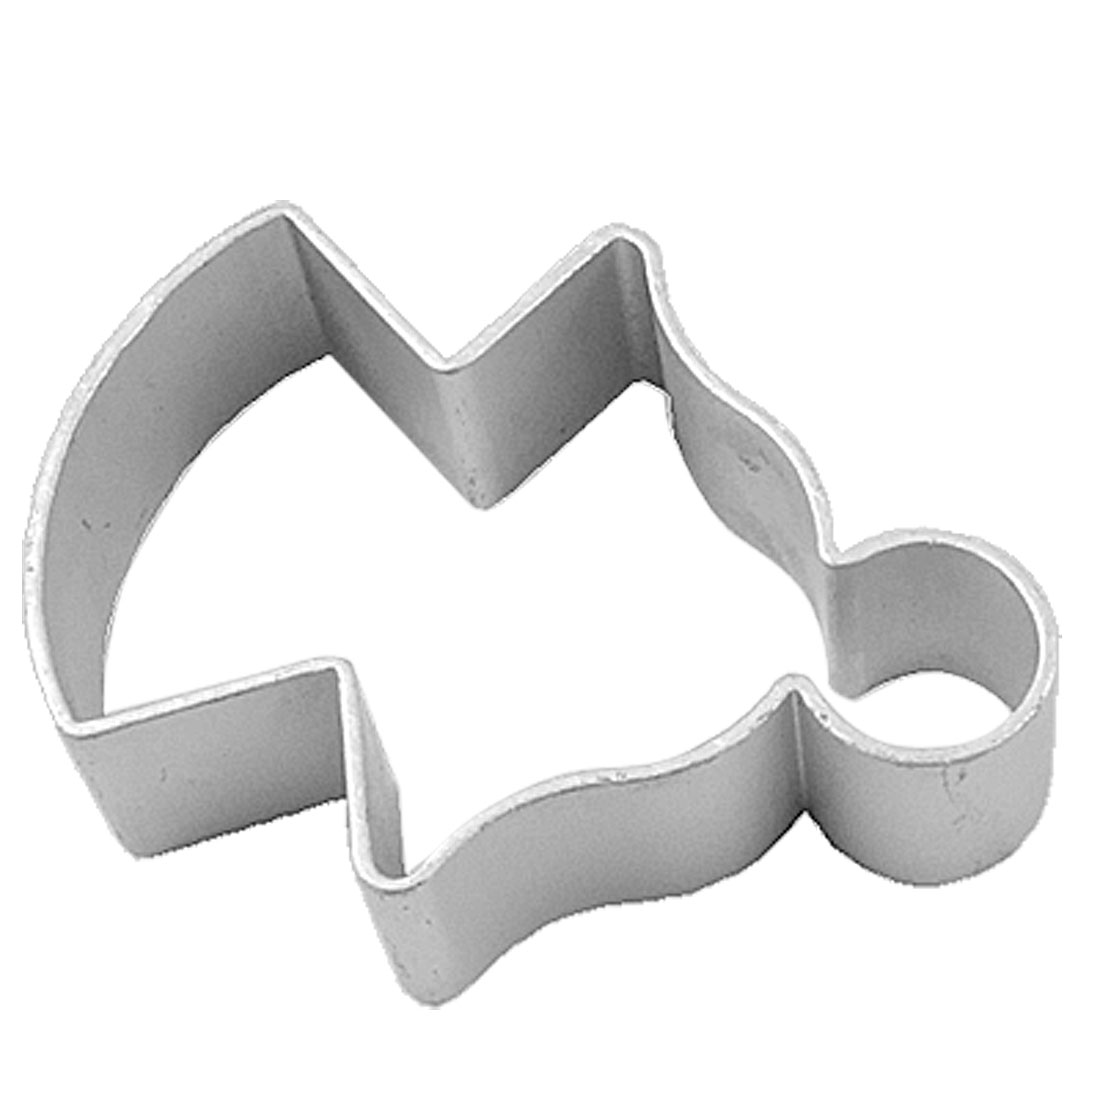 Xmas Home DIY Cookie Biscuit Baking Girl Shape Metal Cutter Mold